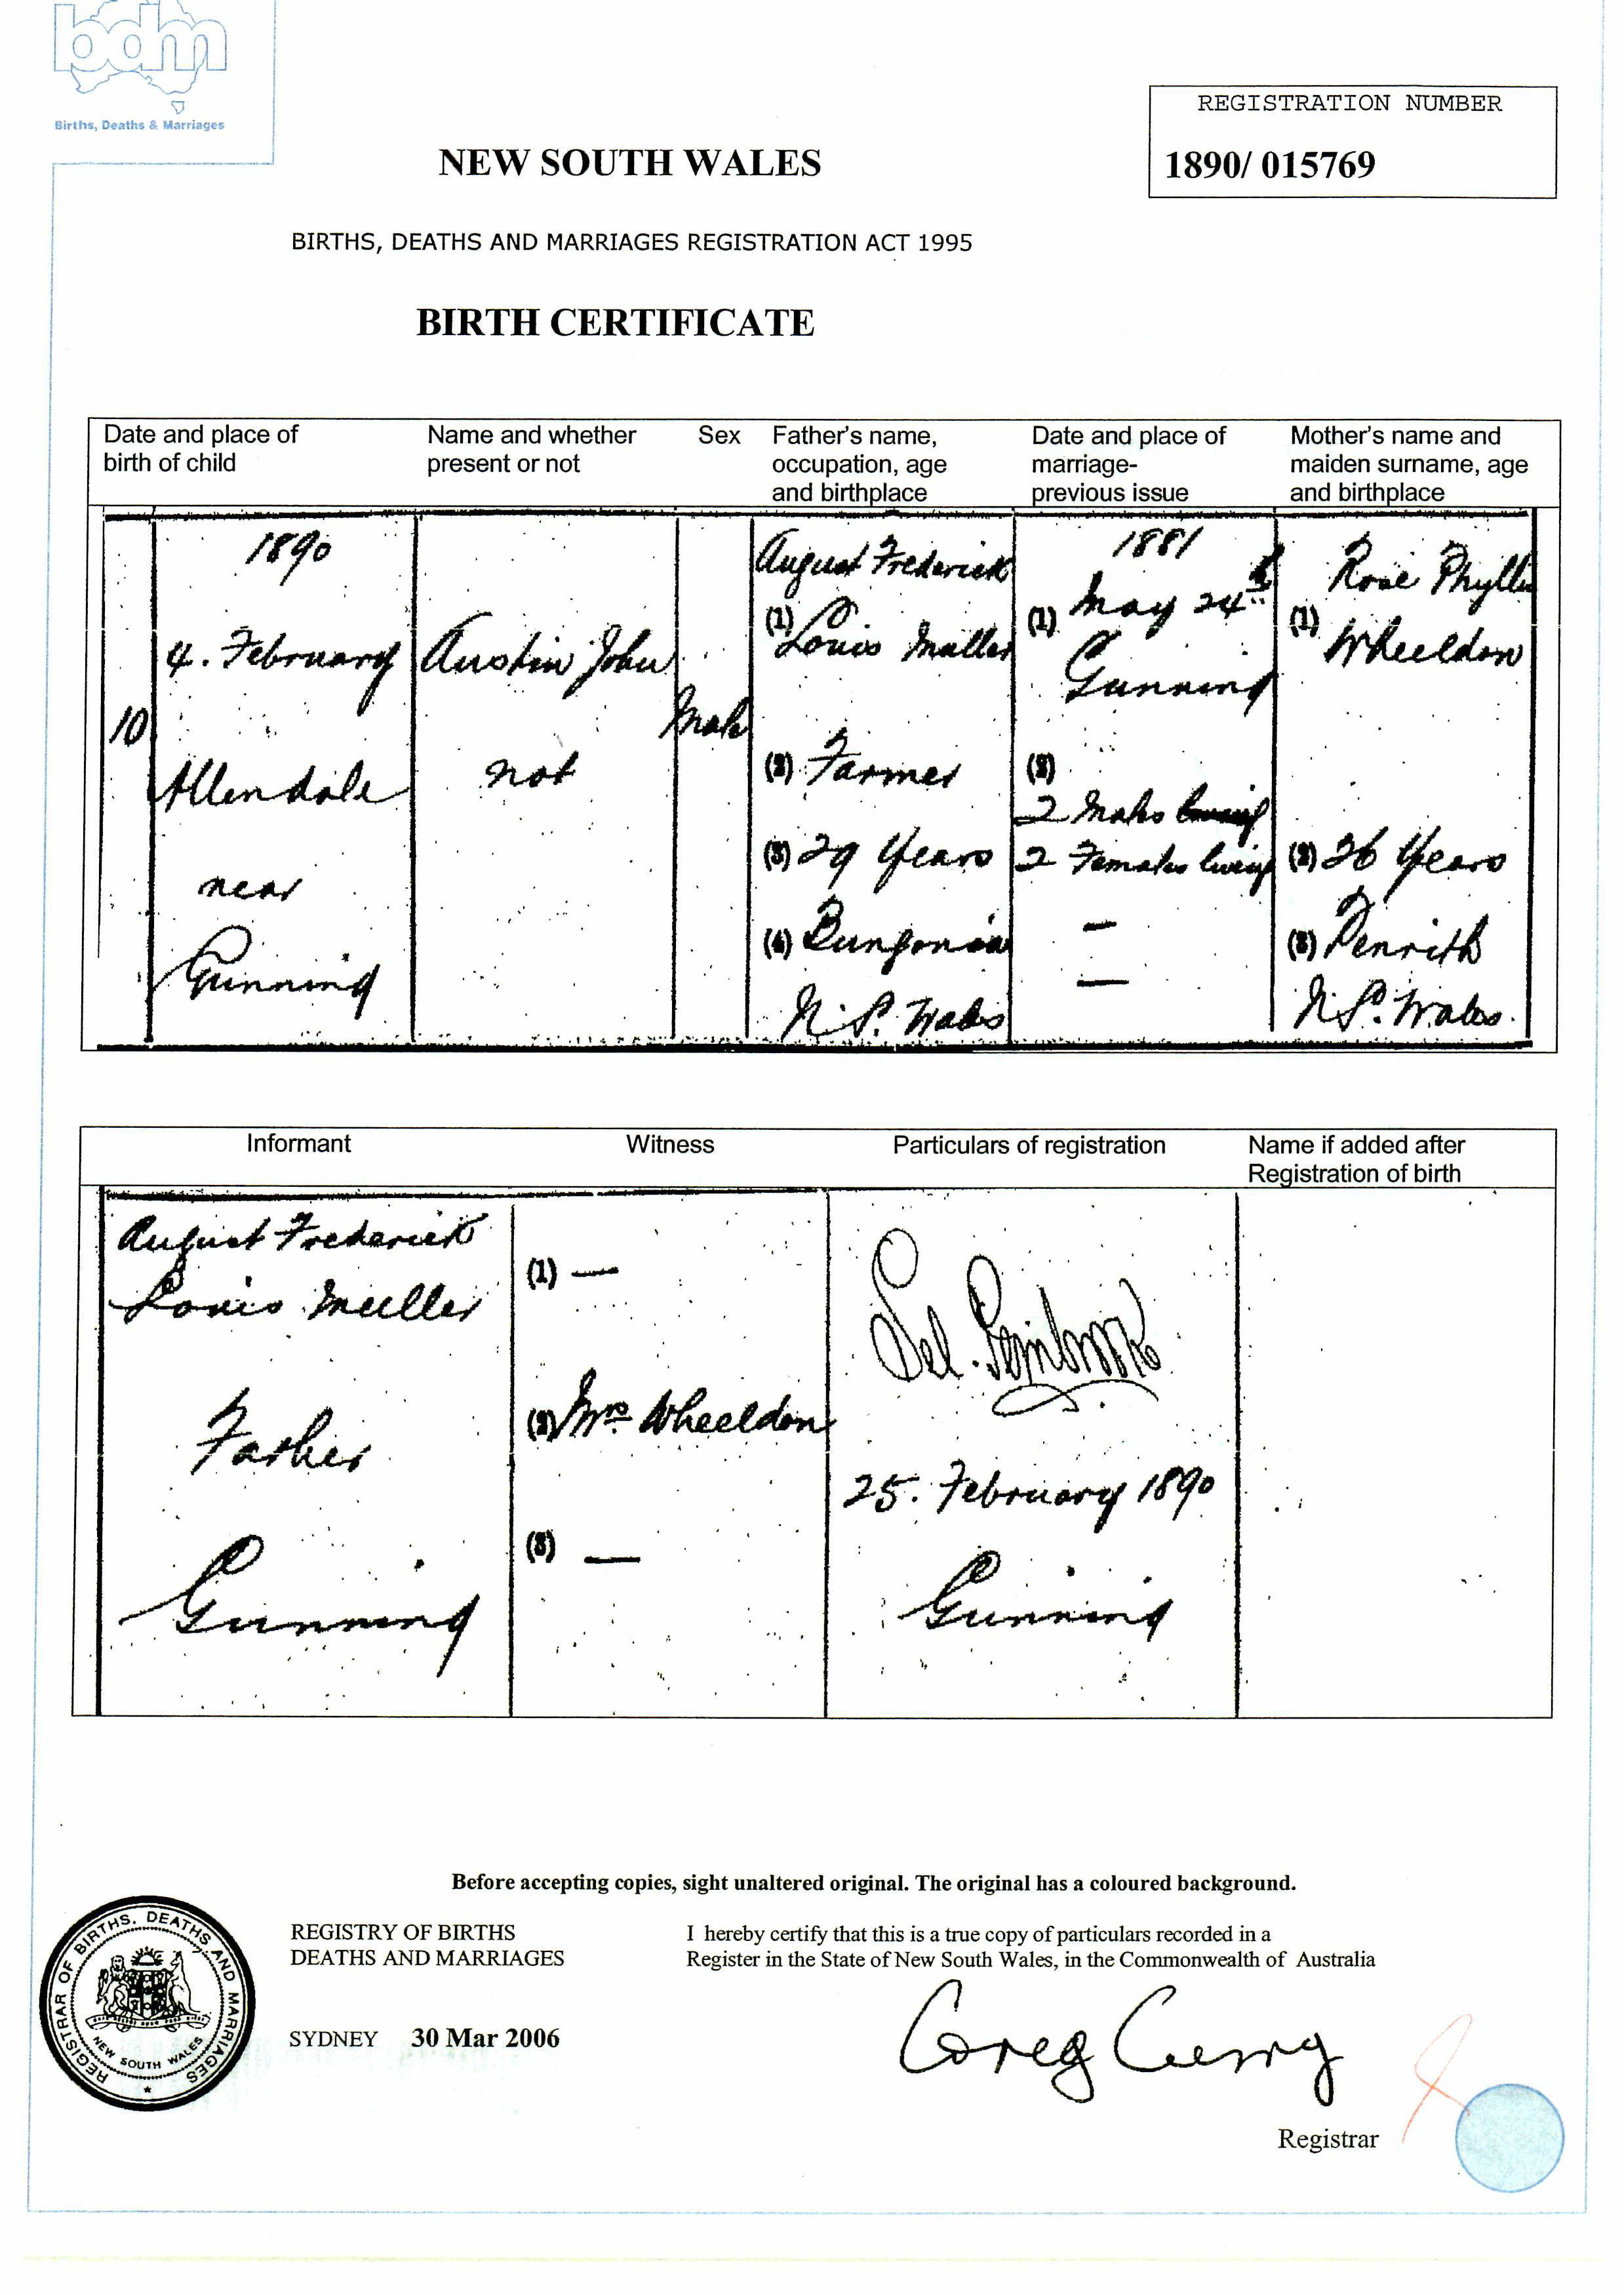 Birth Certificate:<br /> 1890<br /> 4 February<br /> Allendale near Gunning<br /> Austin John<br /> Male<br /> Father: Augustine Frederick<br /> Louis Muller<br /> Farmer<br /> 29 years<br /> Bungonia, NSW<br /> Married:<br /> 1881<br /> May 24<br /> Gunning<br /> 2 males ?<br /> 2 females ?<br /> Mother:<br /> Rose Phyllis<br /> WHEELDON<br /> 26 years<br /> Penrith, NSW<br /> Informant:<br /> August Frederick &amp; Lo? Muller<br /> Parkes?<br /> Gunning<br /> Registered<br /> 25 February 1890<br /> Gunning